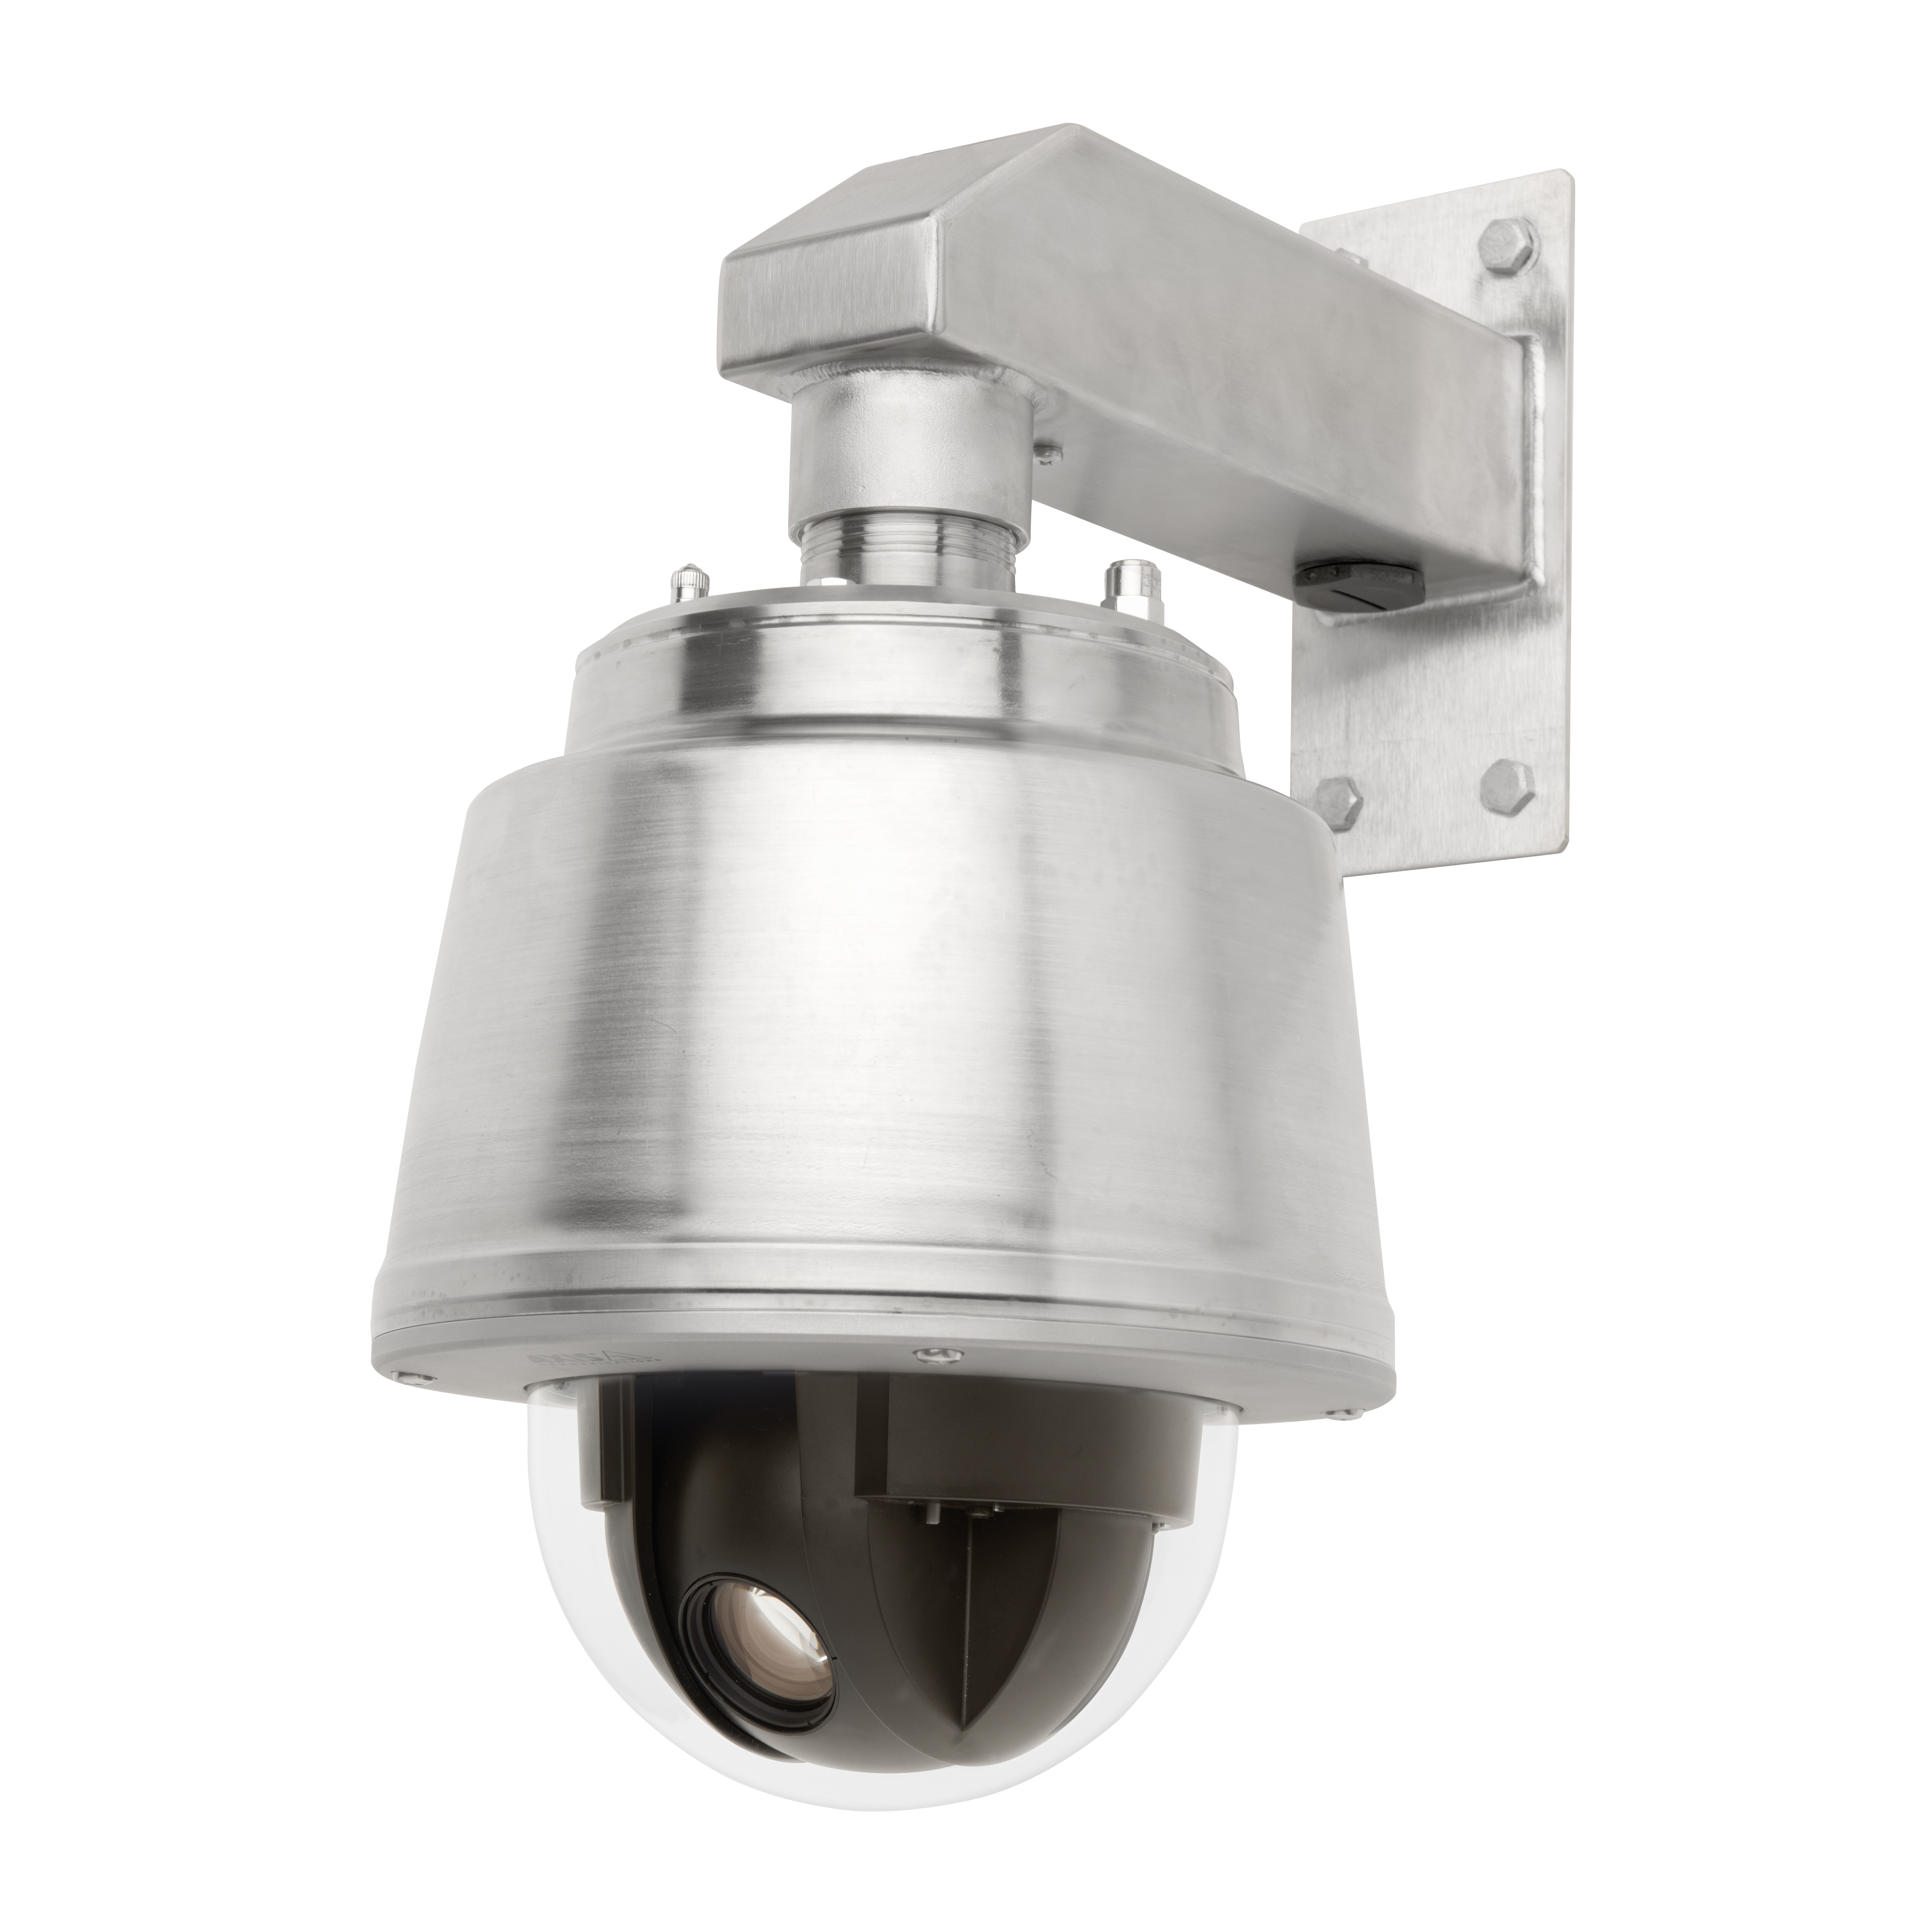 AXIS Q60-S PTZ Domes are nitrogen-pressurized, stainless steel cameras ideal for harbors, mining, and oil and gas sites, as well as food, medical, and clean room facilities. (Photo: Business Wire)